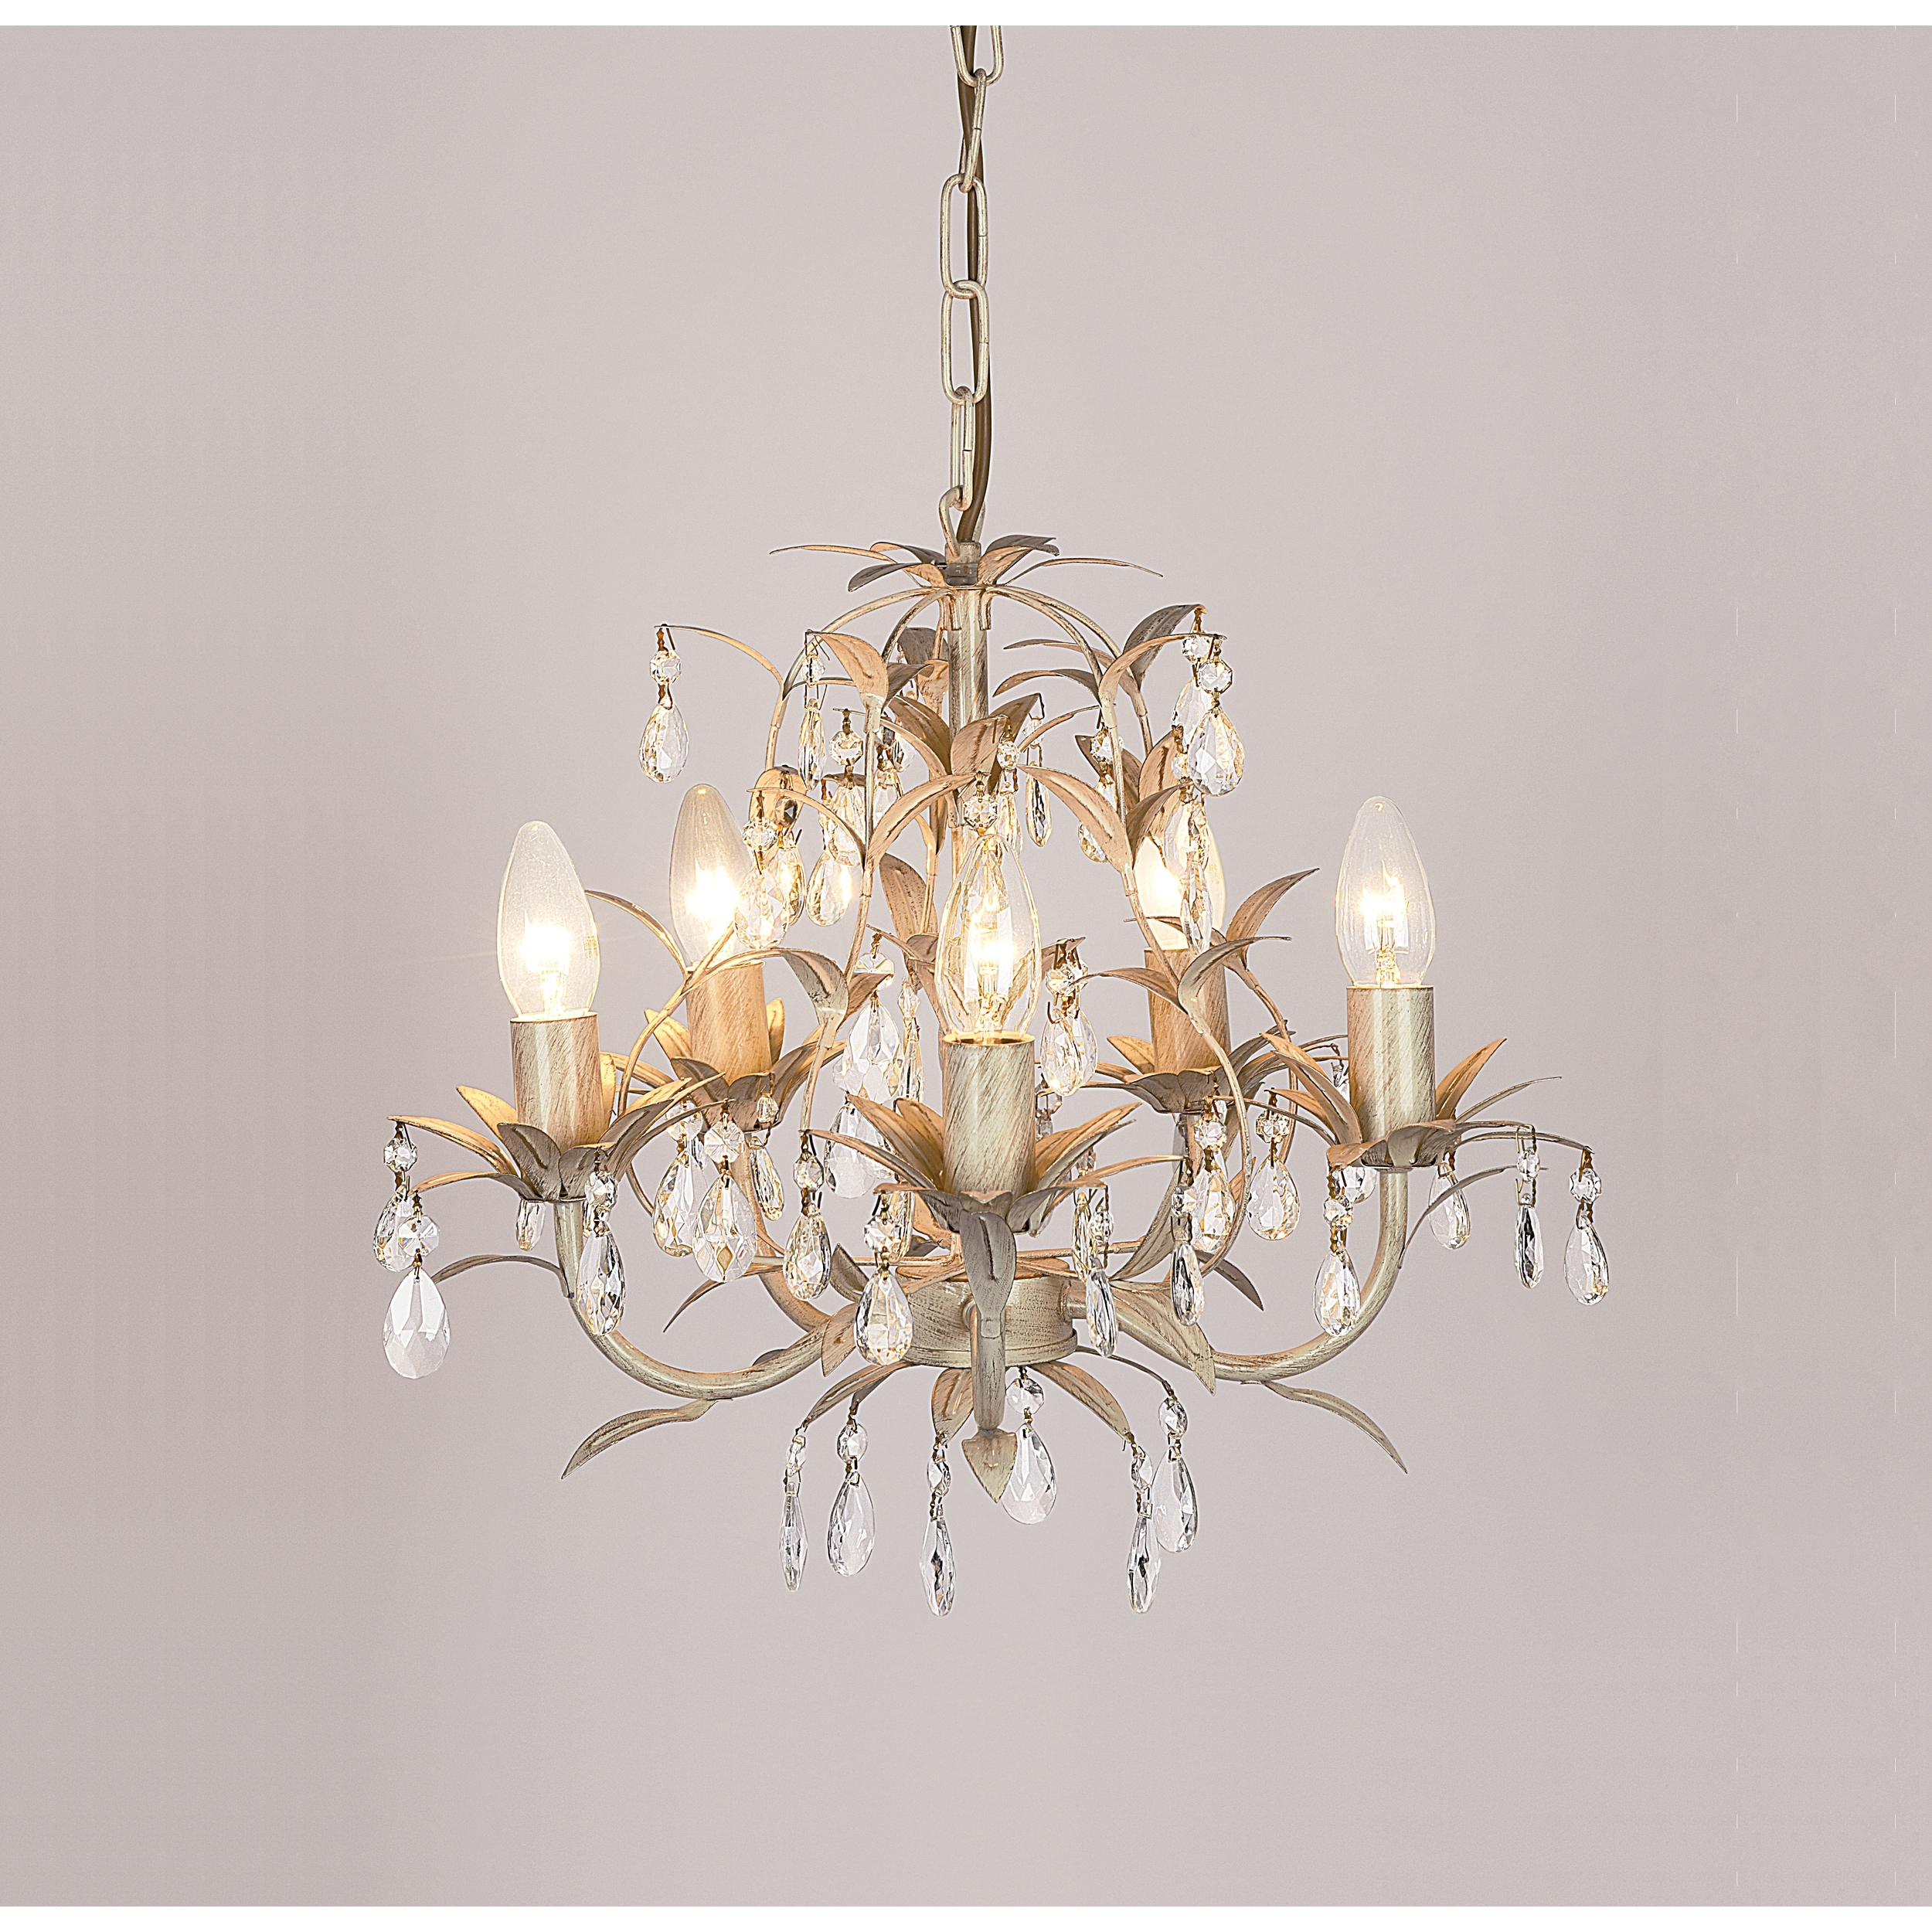 Cream Chandeliers Within Best And Newest Chella Cream 5 Light Chandelier (View 5 of 15)